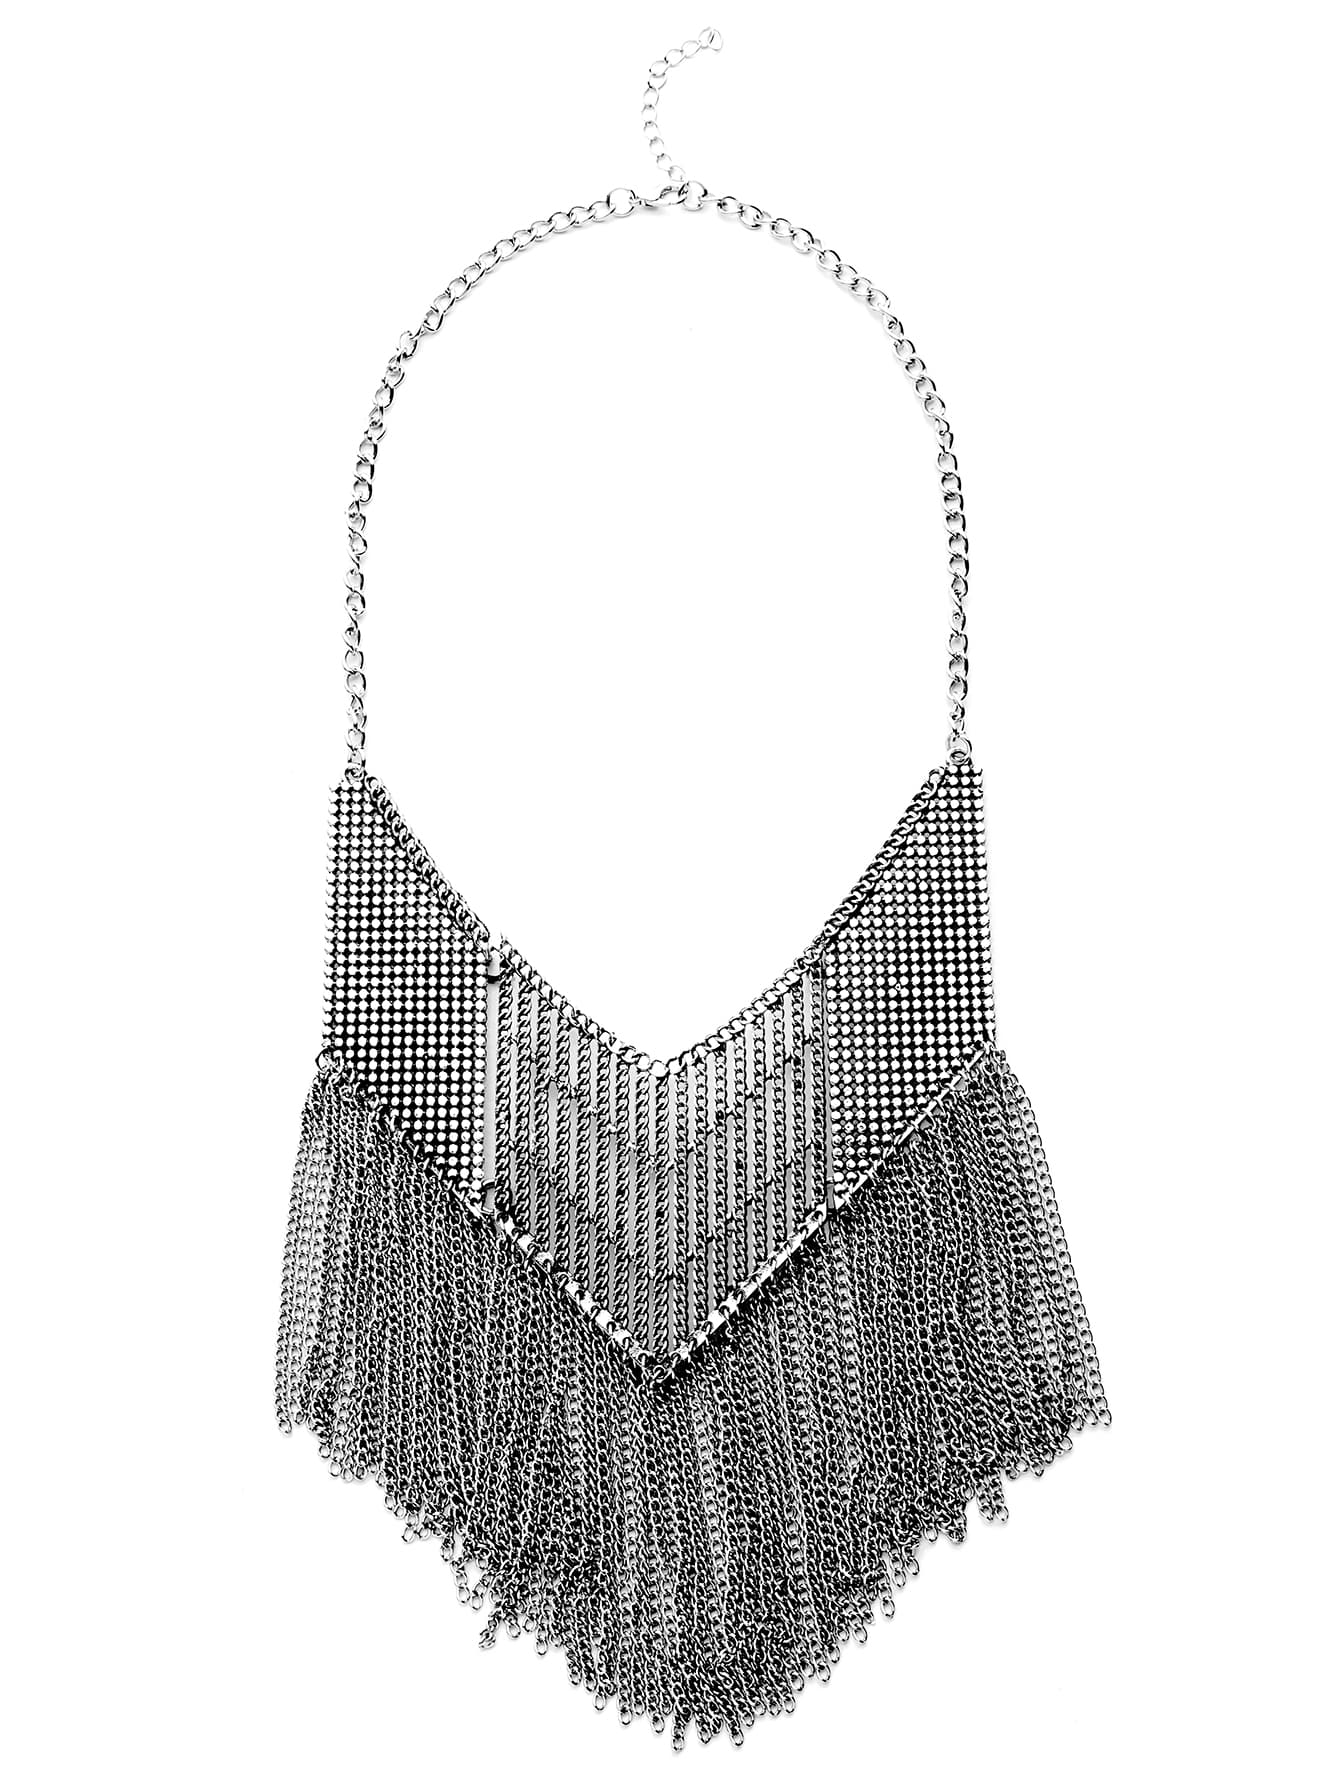 Antique Silver Chain Fringe Hollow Out Statement NecklaceAntique Silver Chain Fringe Hollow Out Statement Necklace<br><br>color: Silver<br>size: None